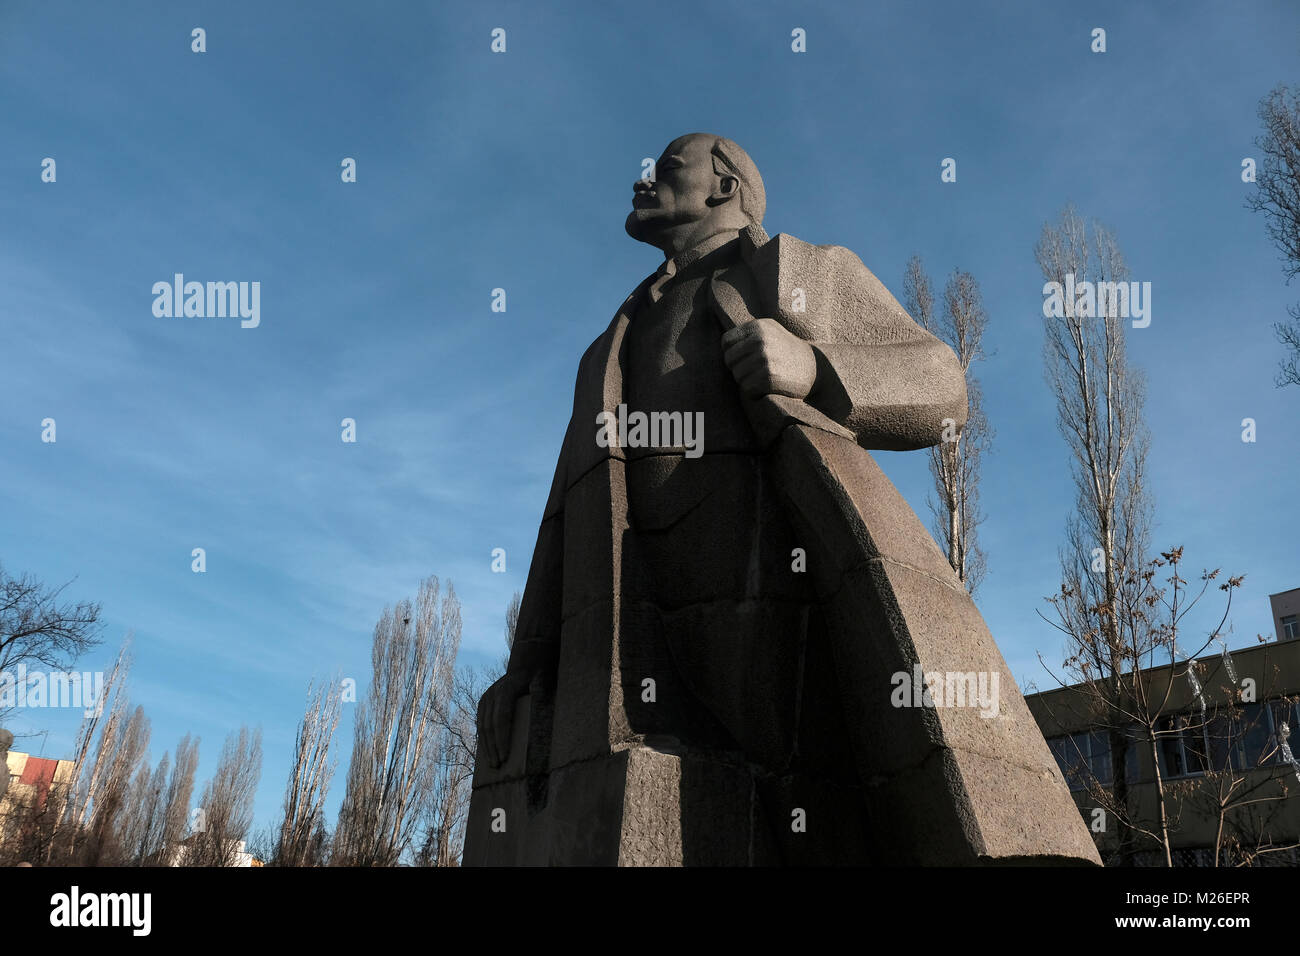 Soviet-era sculpted figure of Vladimir Lenin in front of the Museum of Socialist Art which covers the history of - Stock Image